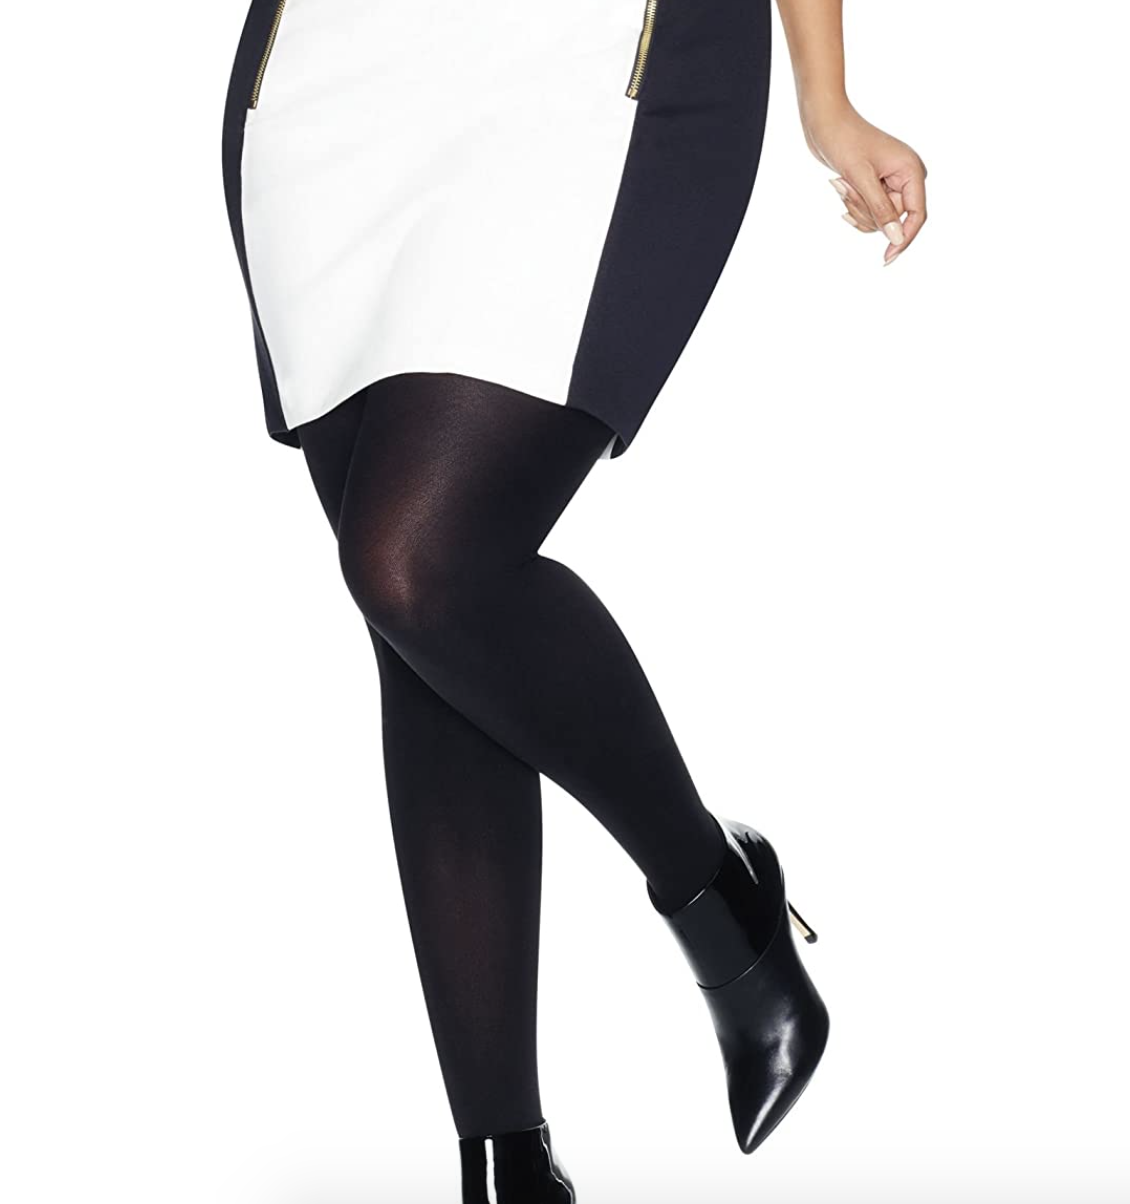 the black tights on a model